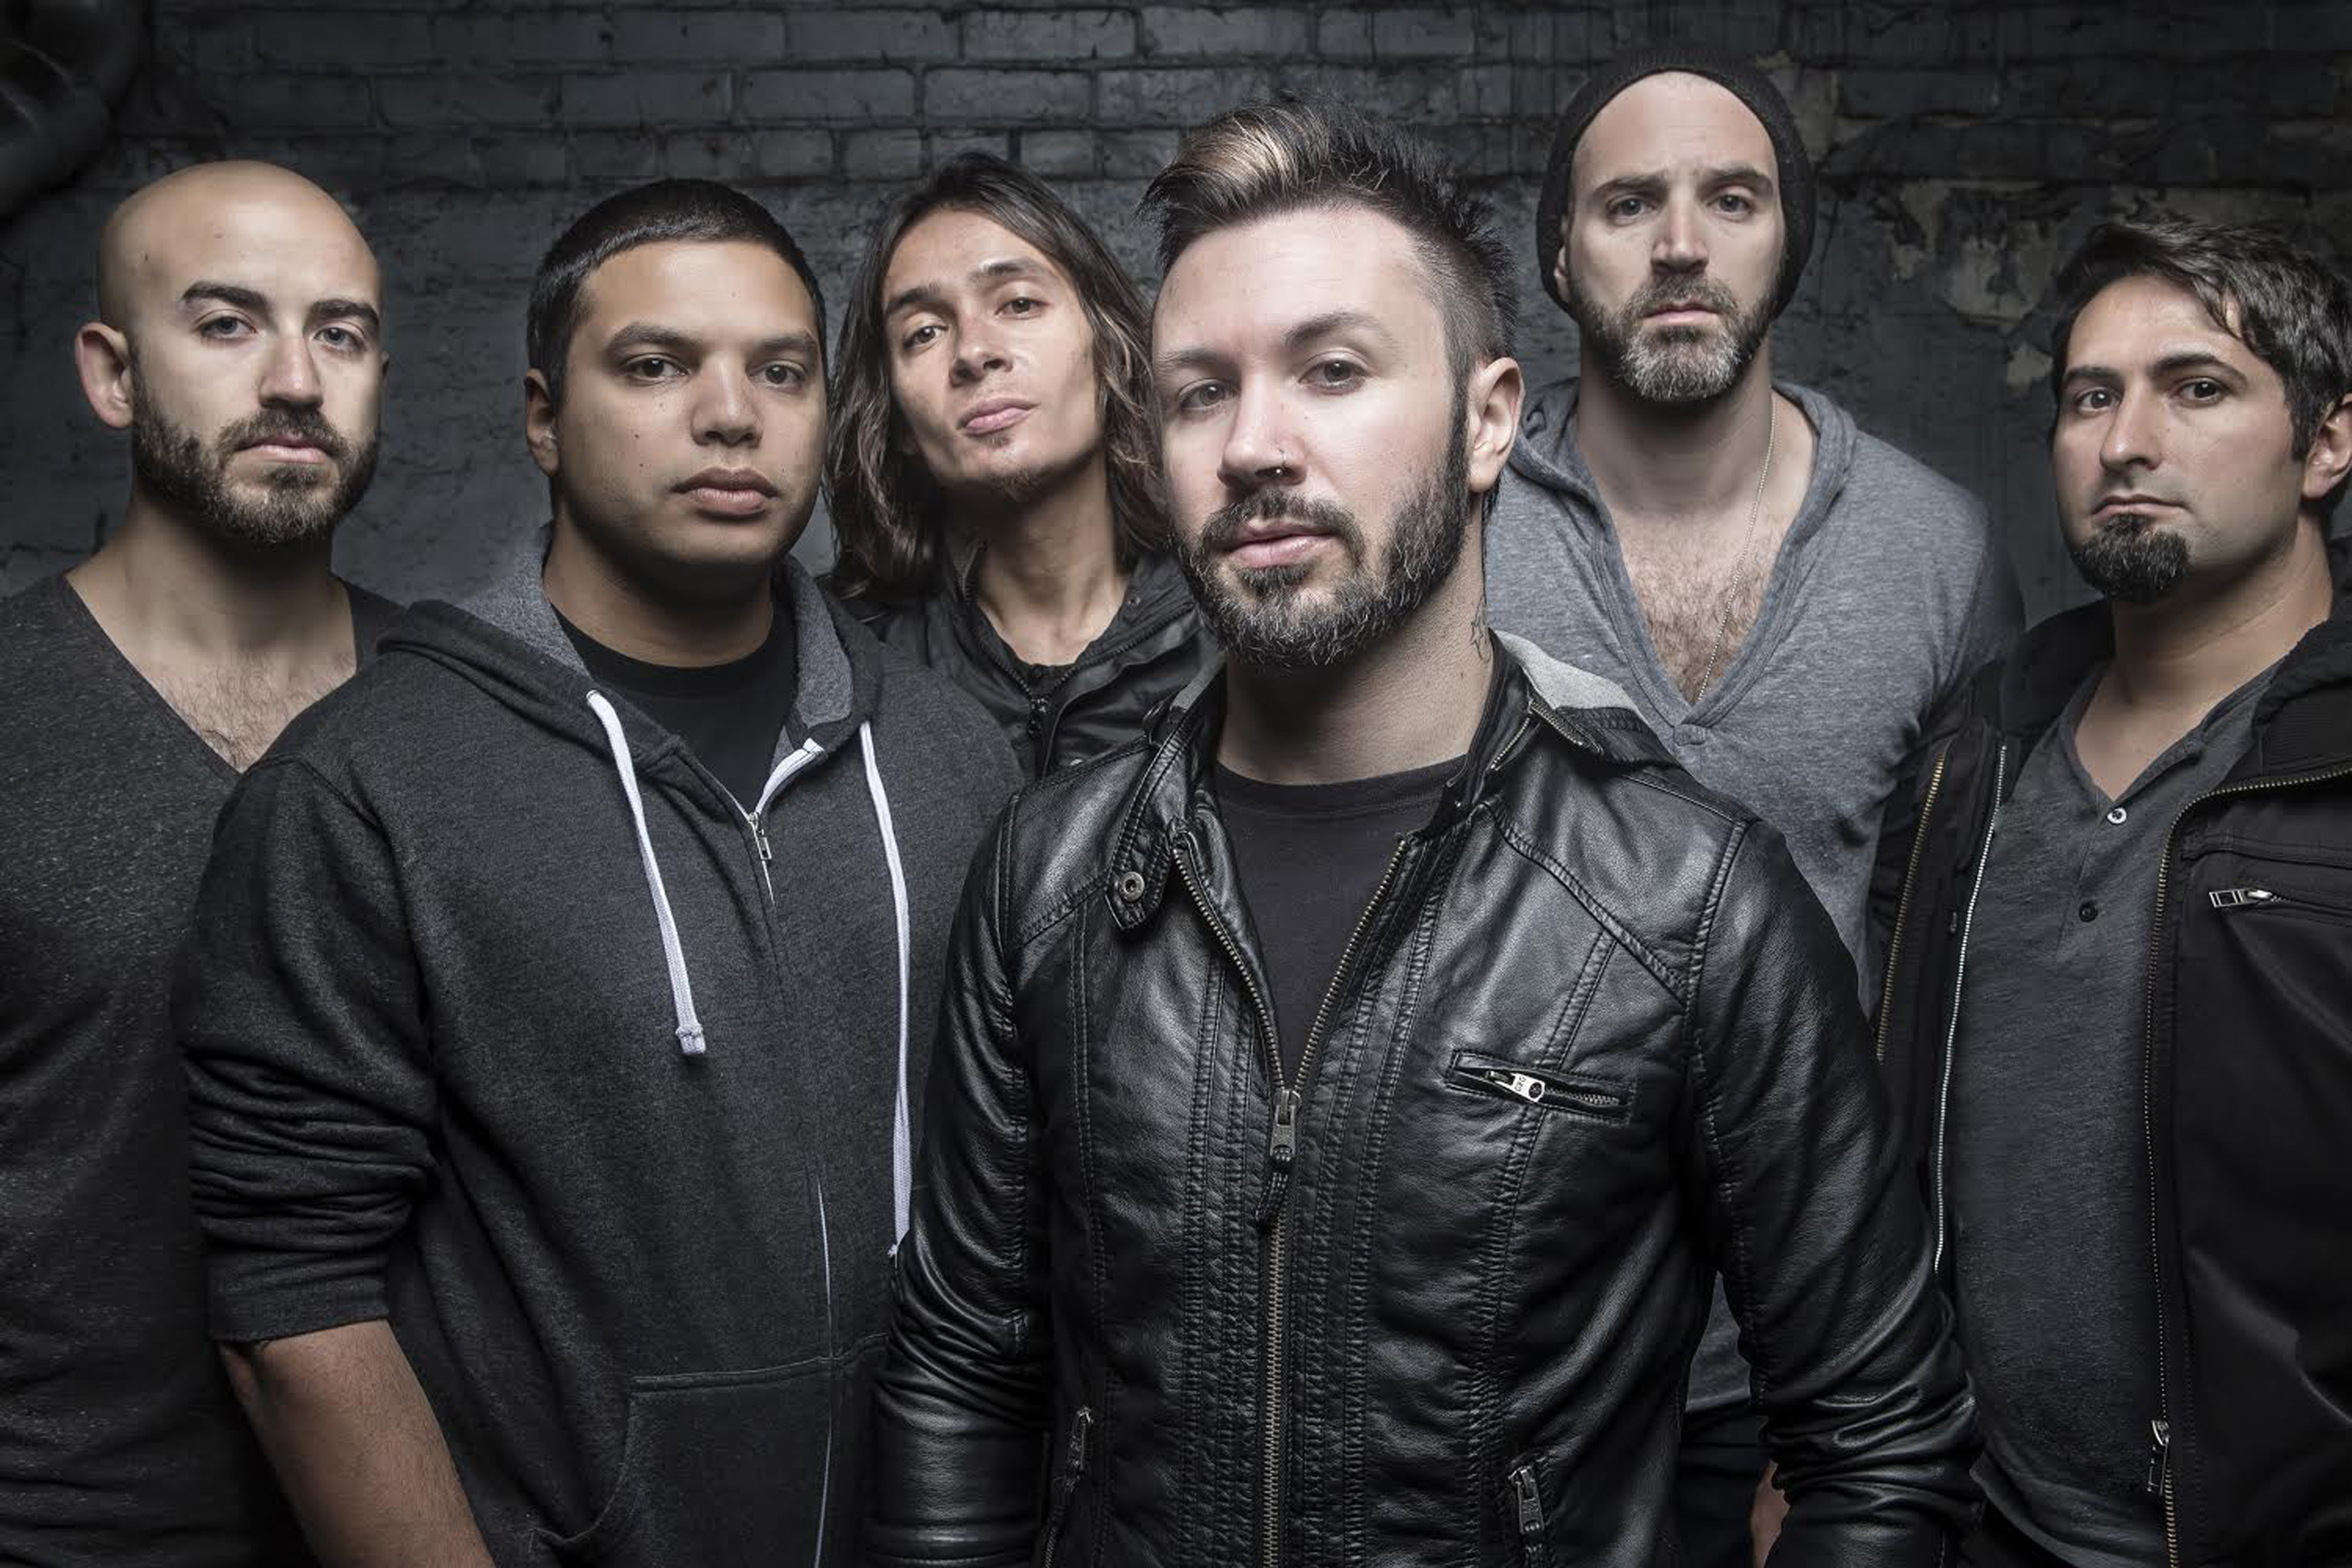 in person periphery s jake bowen the amps and green screens staff writer photographer faye fetters of crystal faye photography got the call to do an onsite interview none other than jake